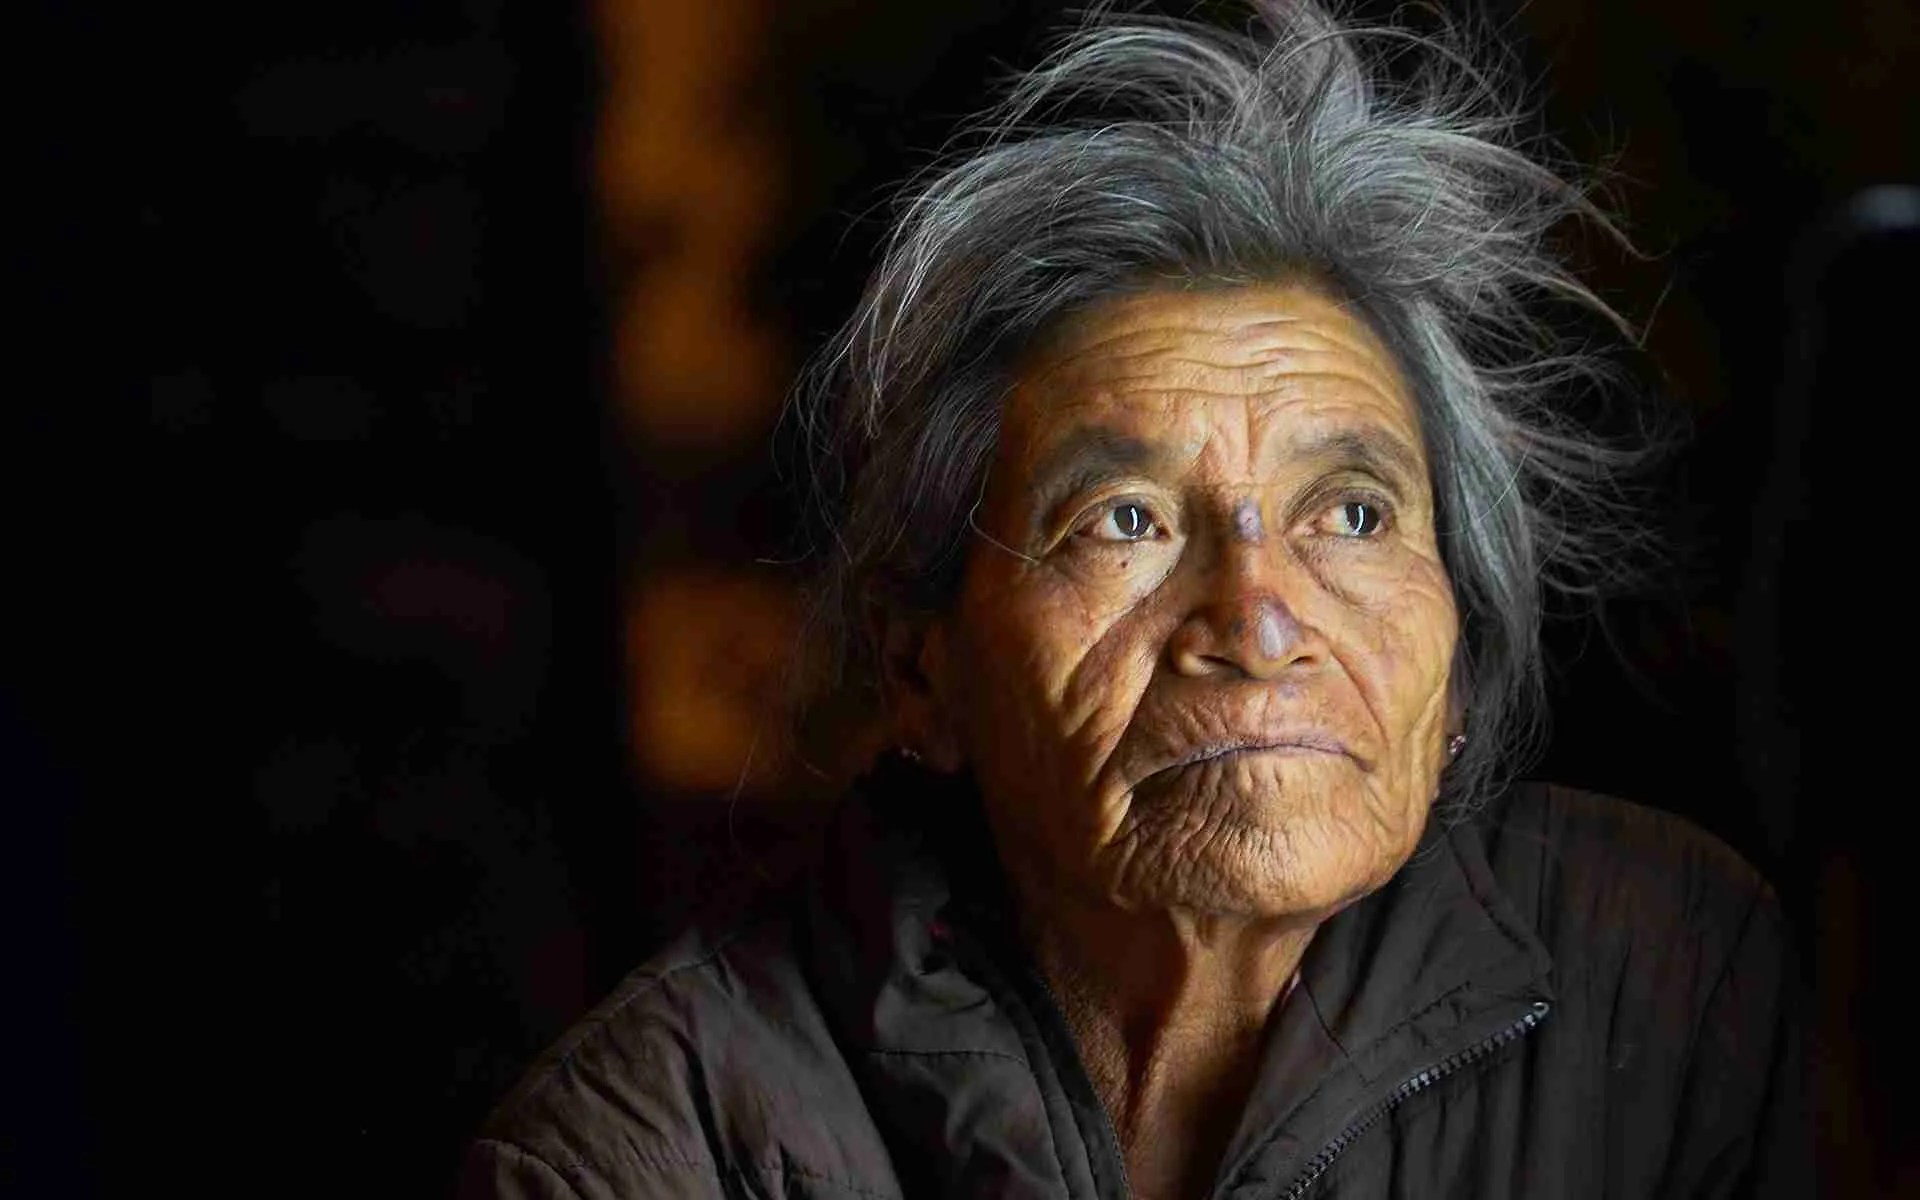 A portrait of an older woman looking pensive.